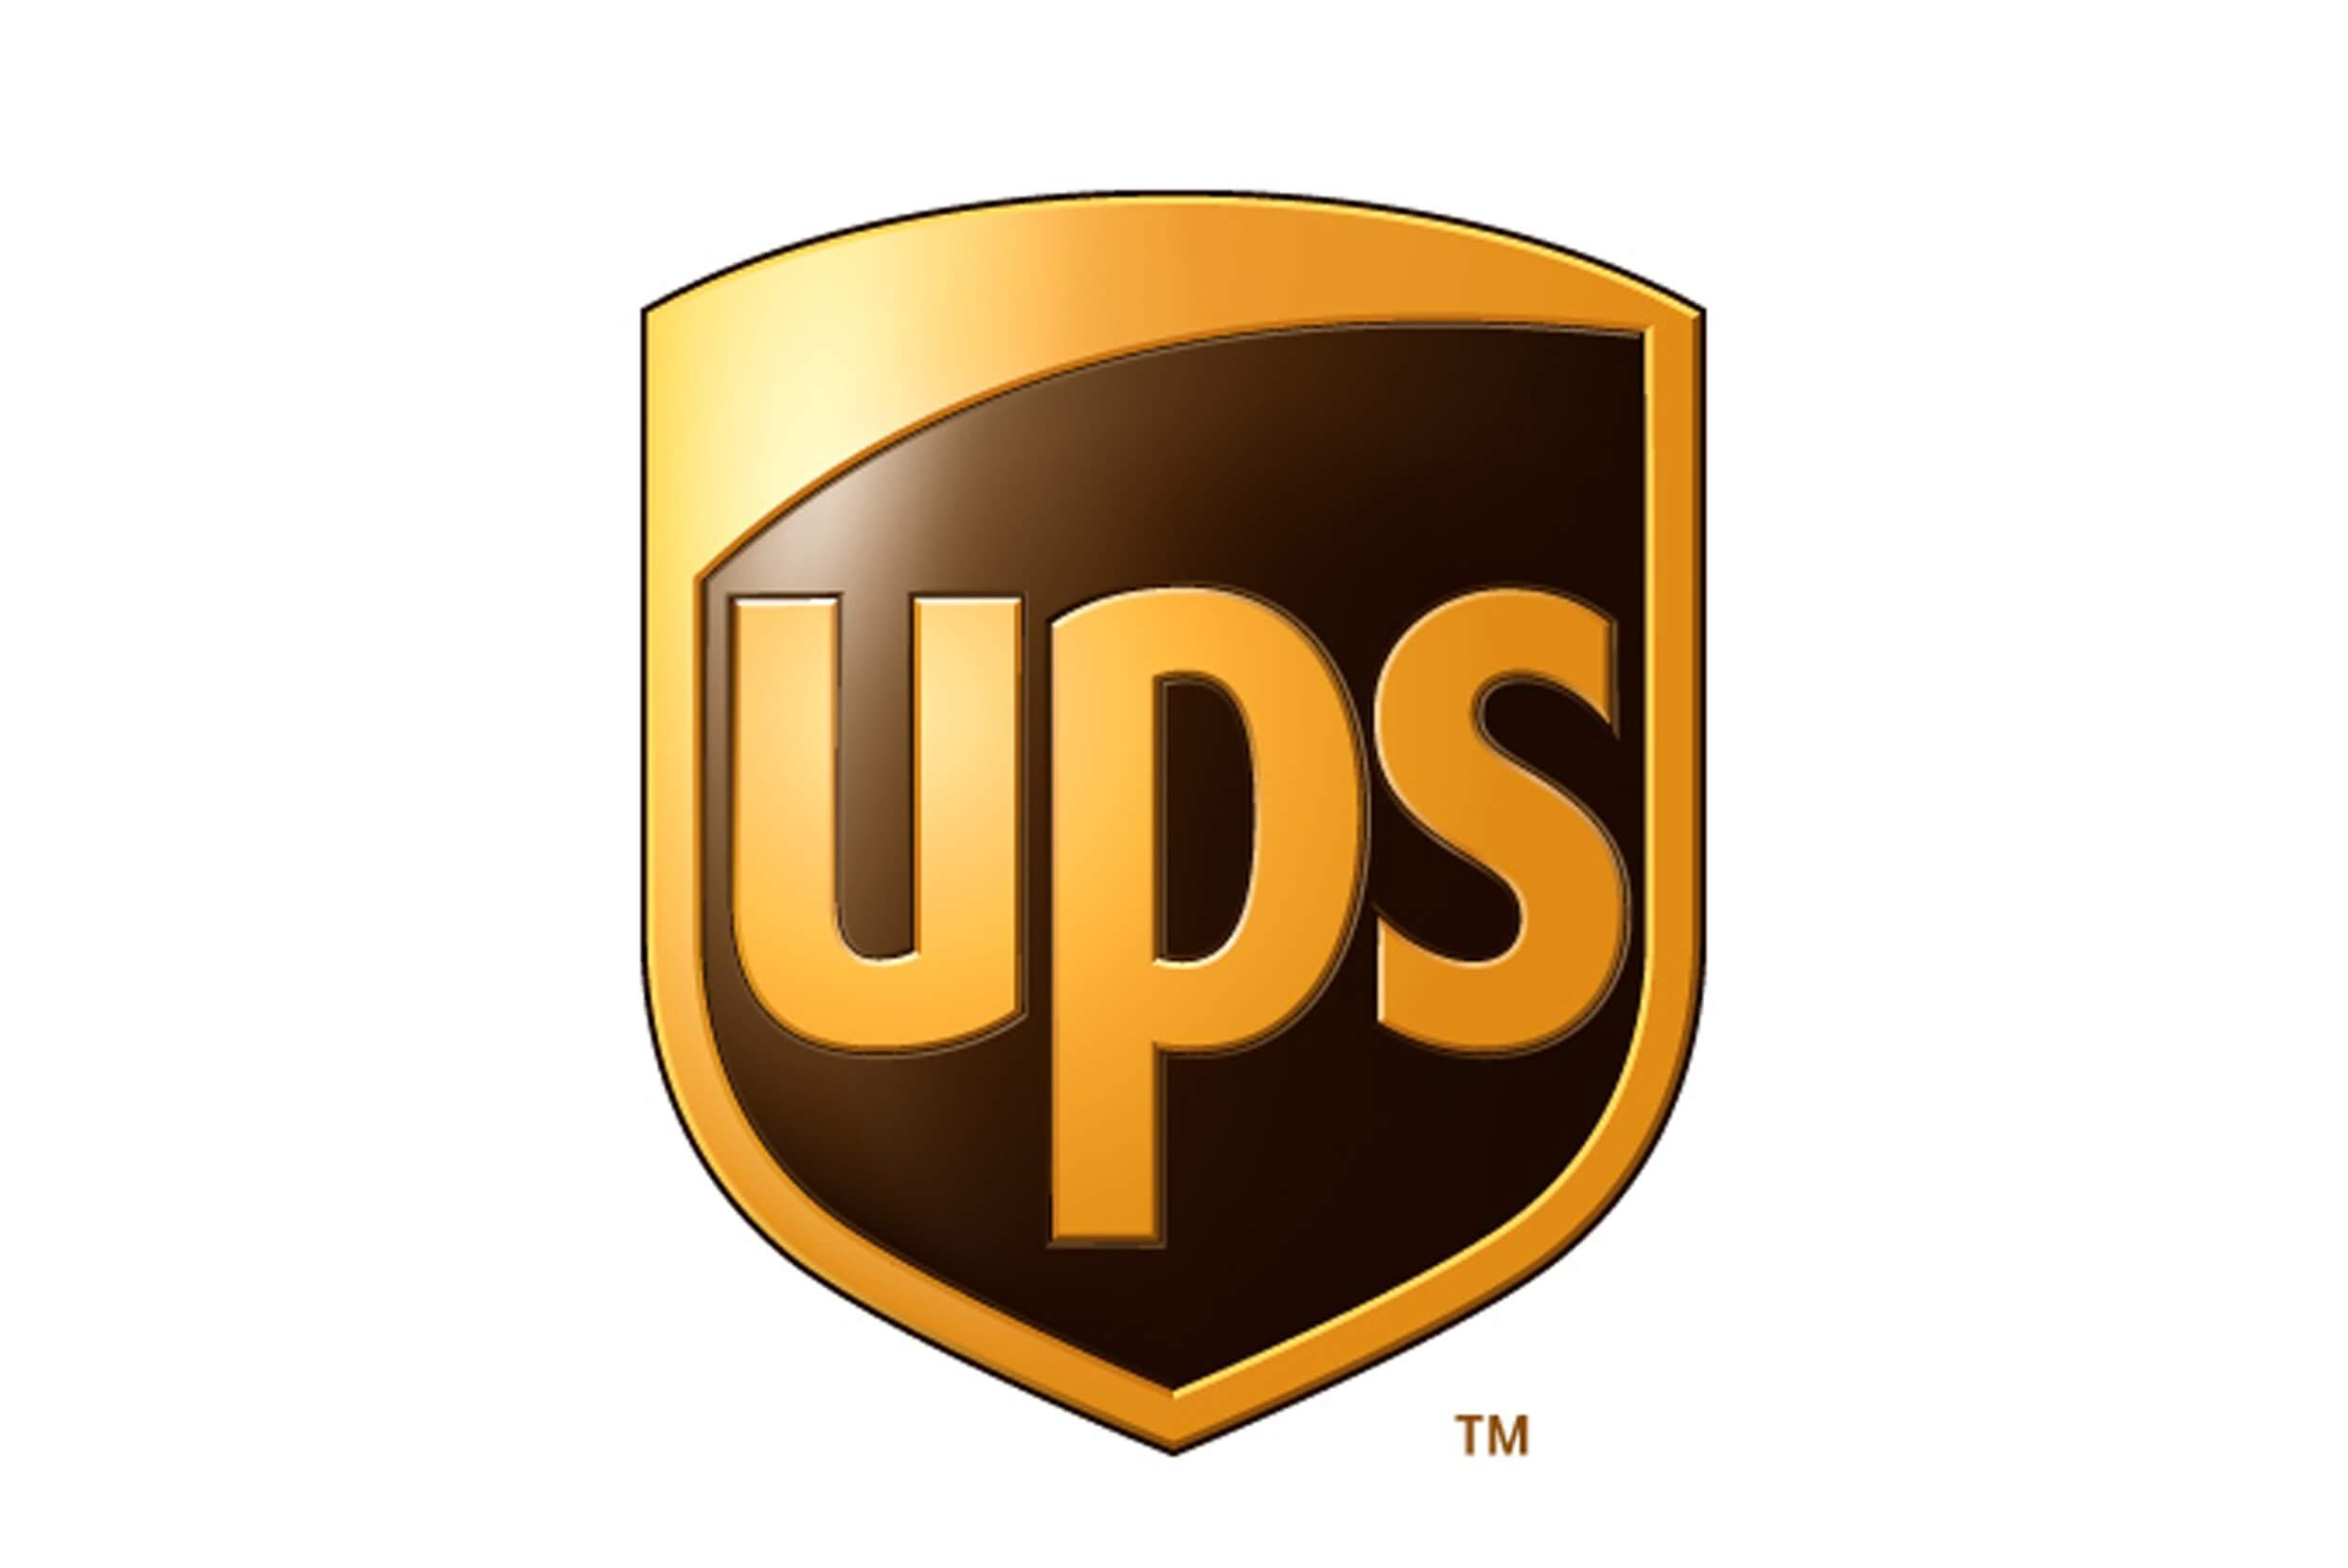 UPS shipping solution integration